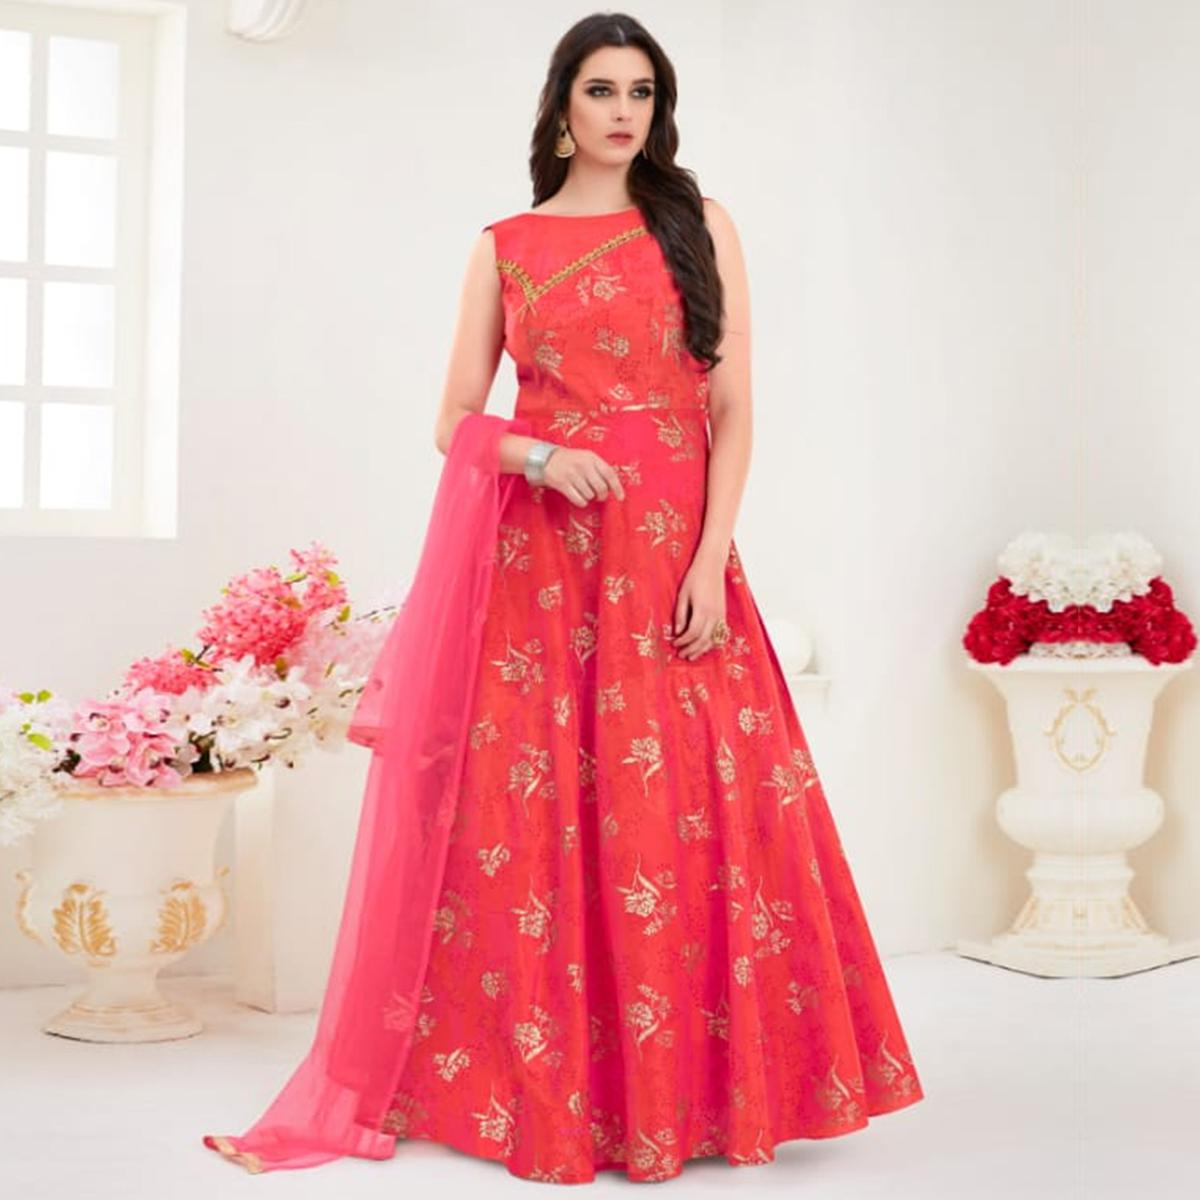 Amazing Coral Red Colored Parytwear Embroidered Modal Gown